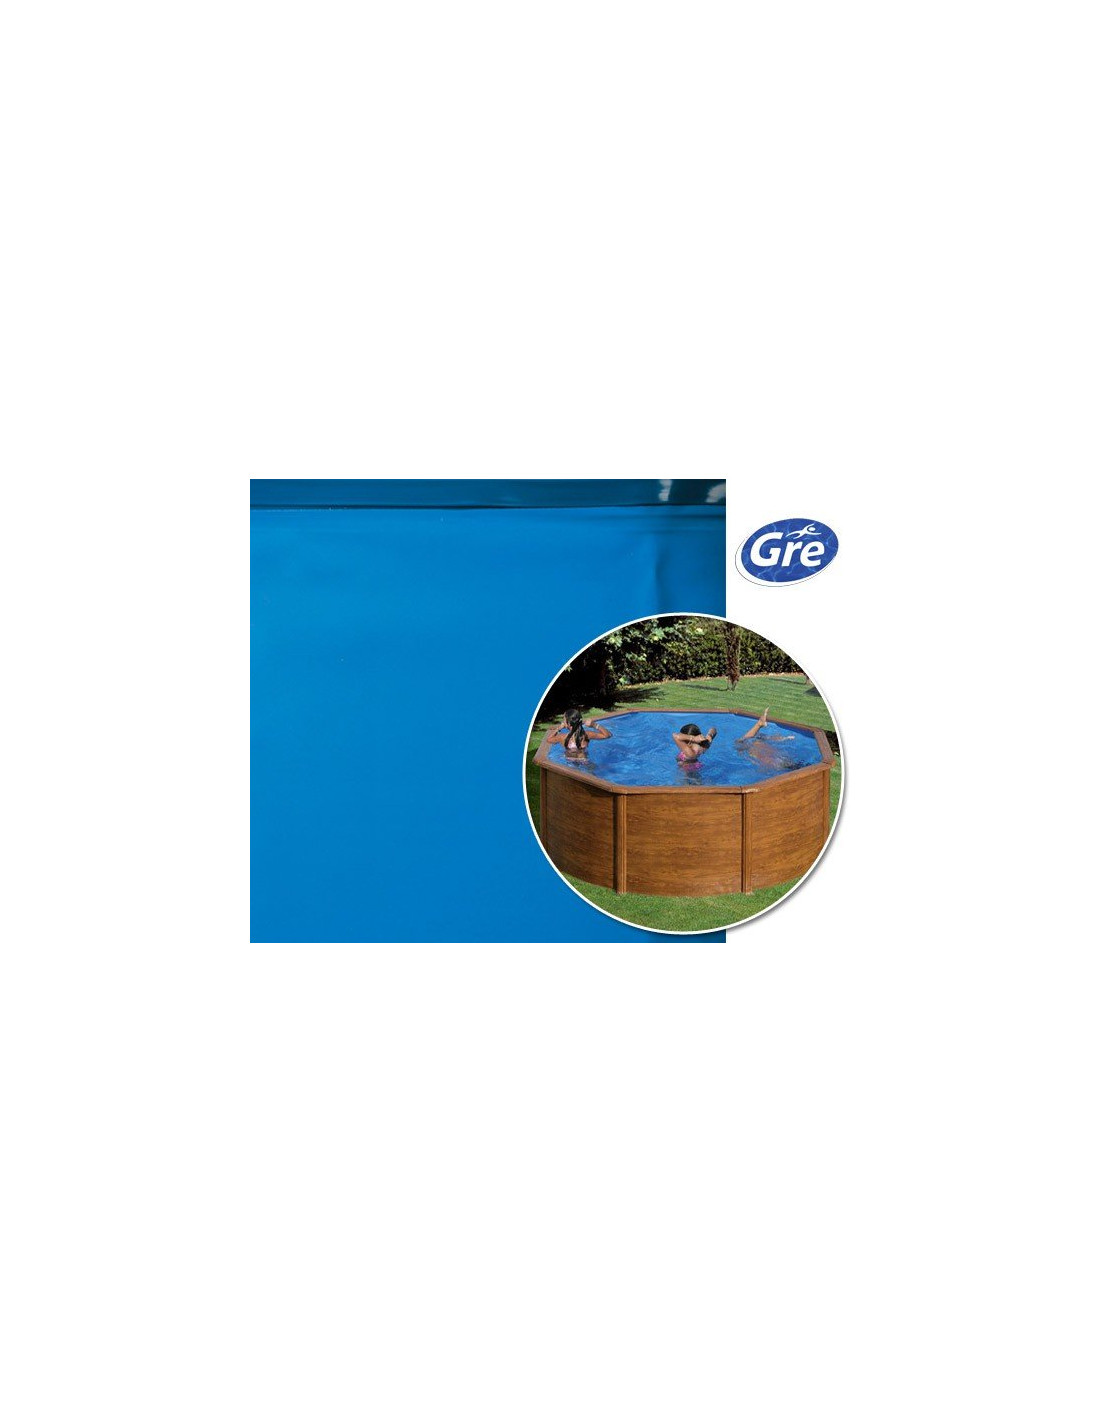 Liner piscine hors sol ronde gre pool coloris bleu for Liner piscine ronde 5 50